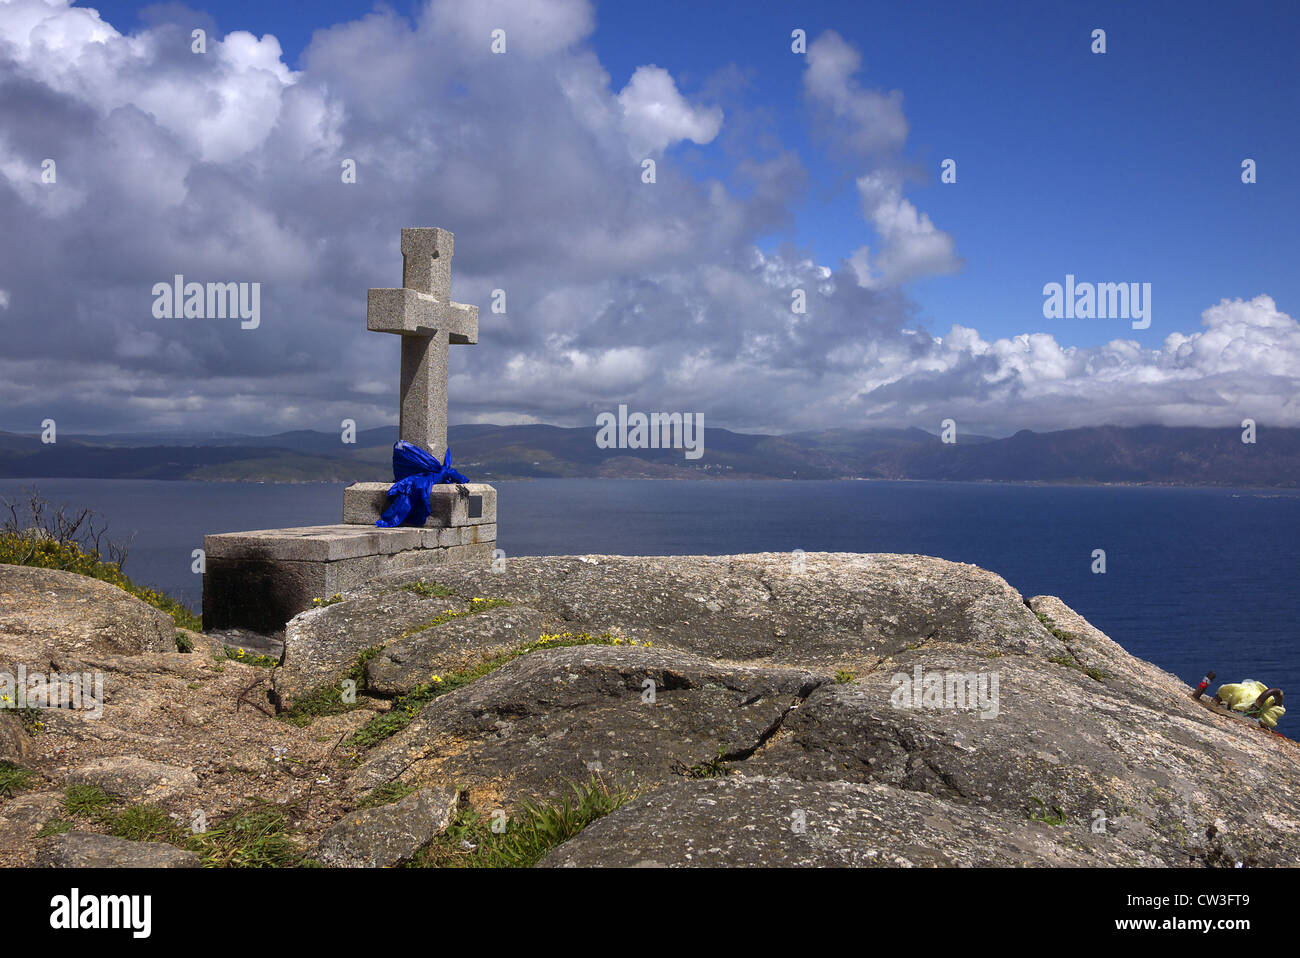 A memorial on the rocks at Finisterre in Spain, an extension of the pilgrim route to Santiago de Compostela. - Stock Image